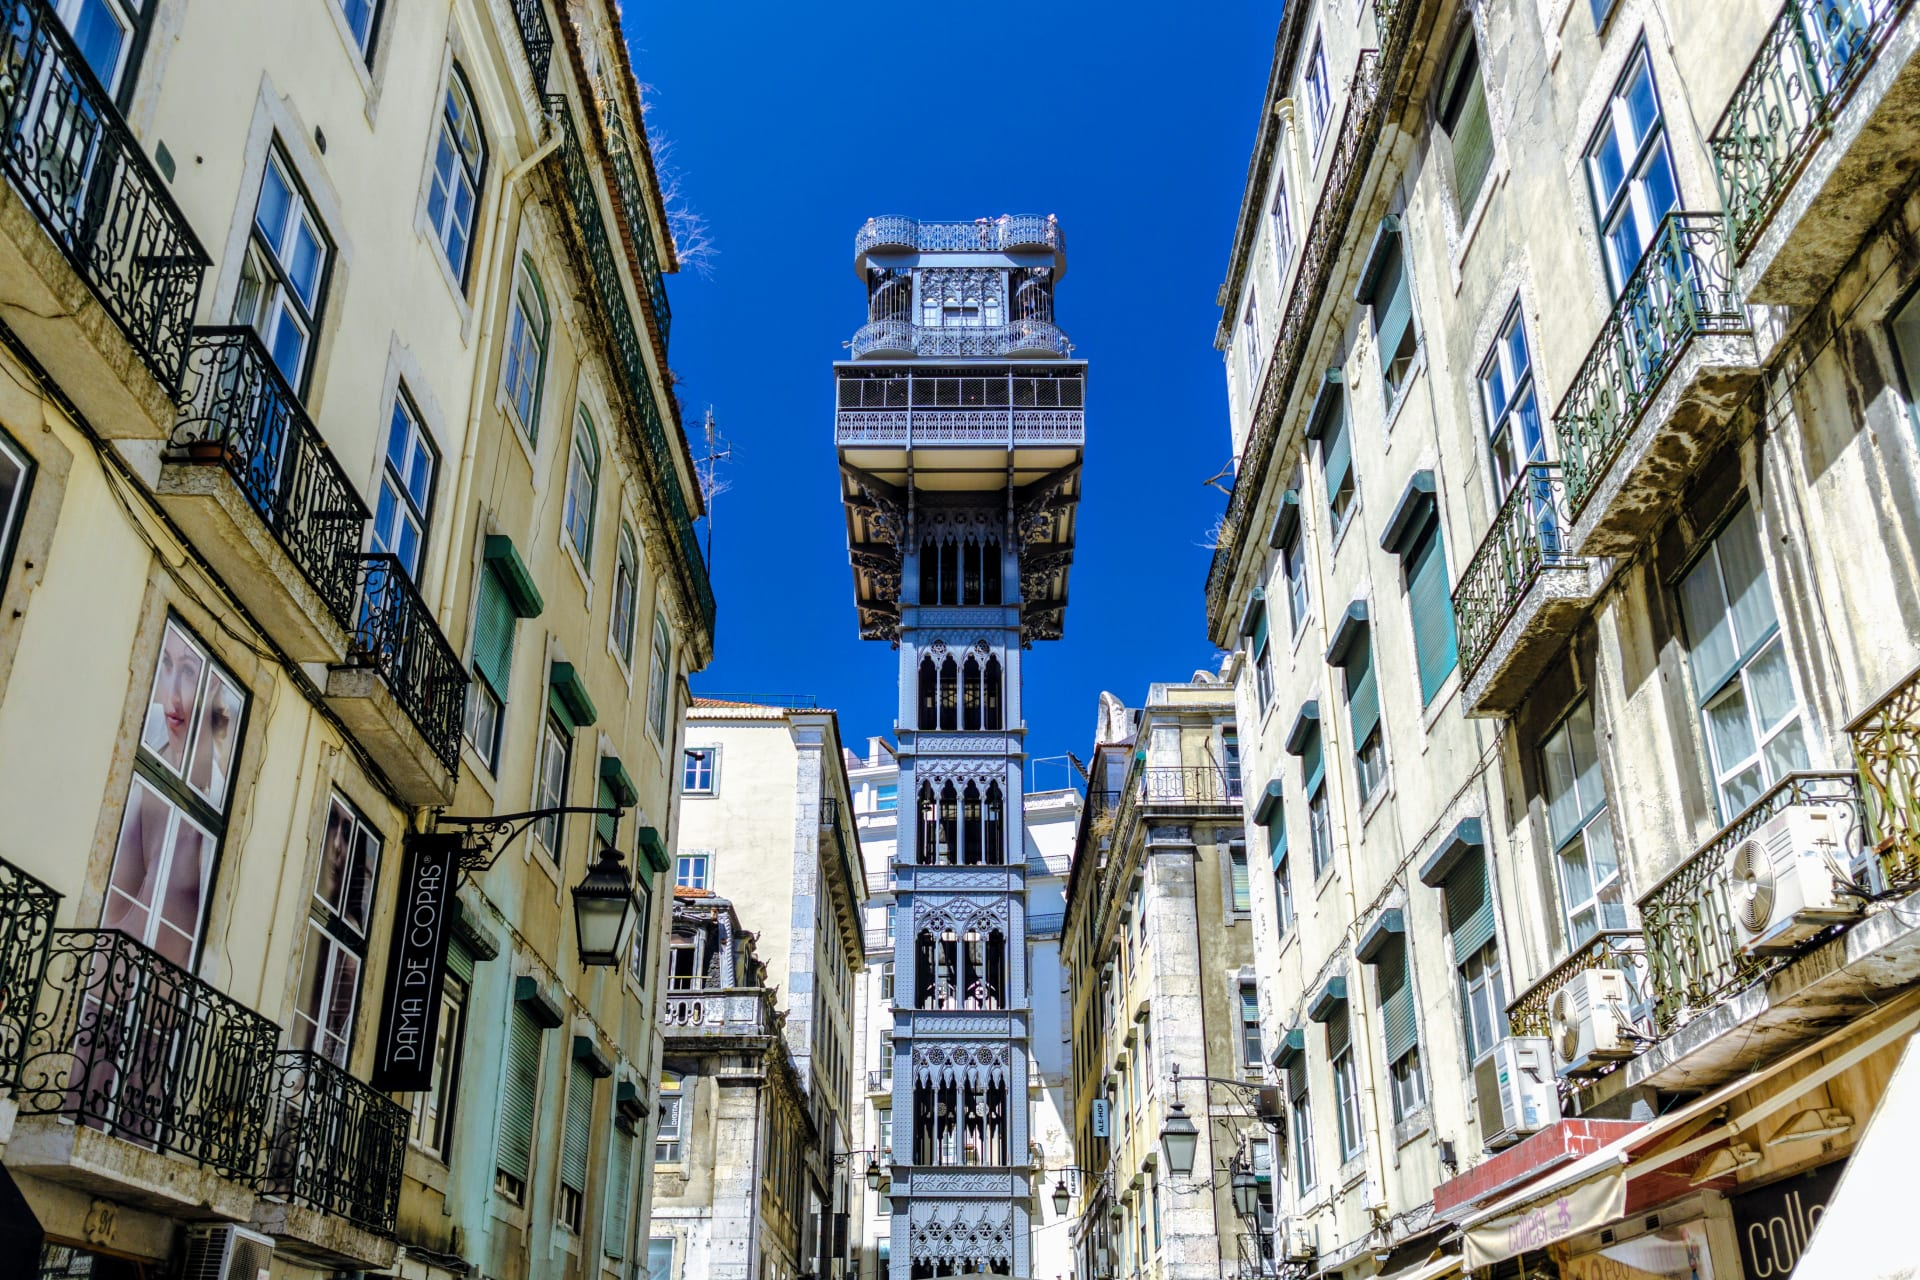 Lisbon - Ginjinha Stores, Jewish Roots, and Santa Justa Lift